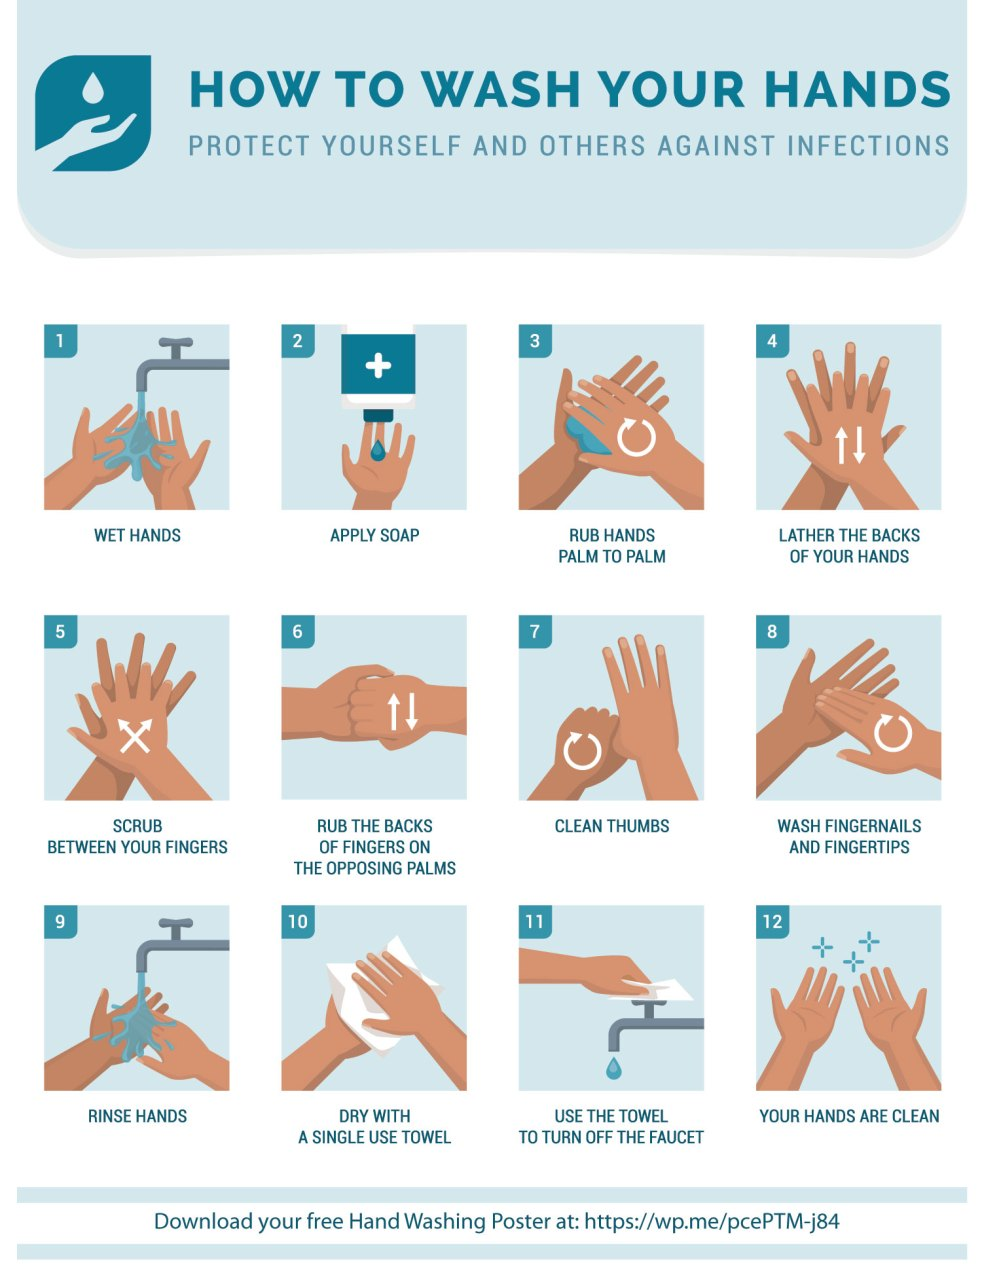 How to wash your hands to protect yourself and others against infections. A free printable poster.